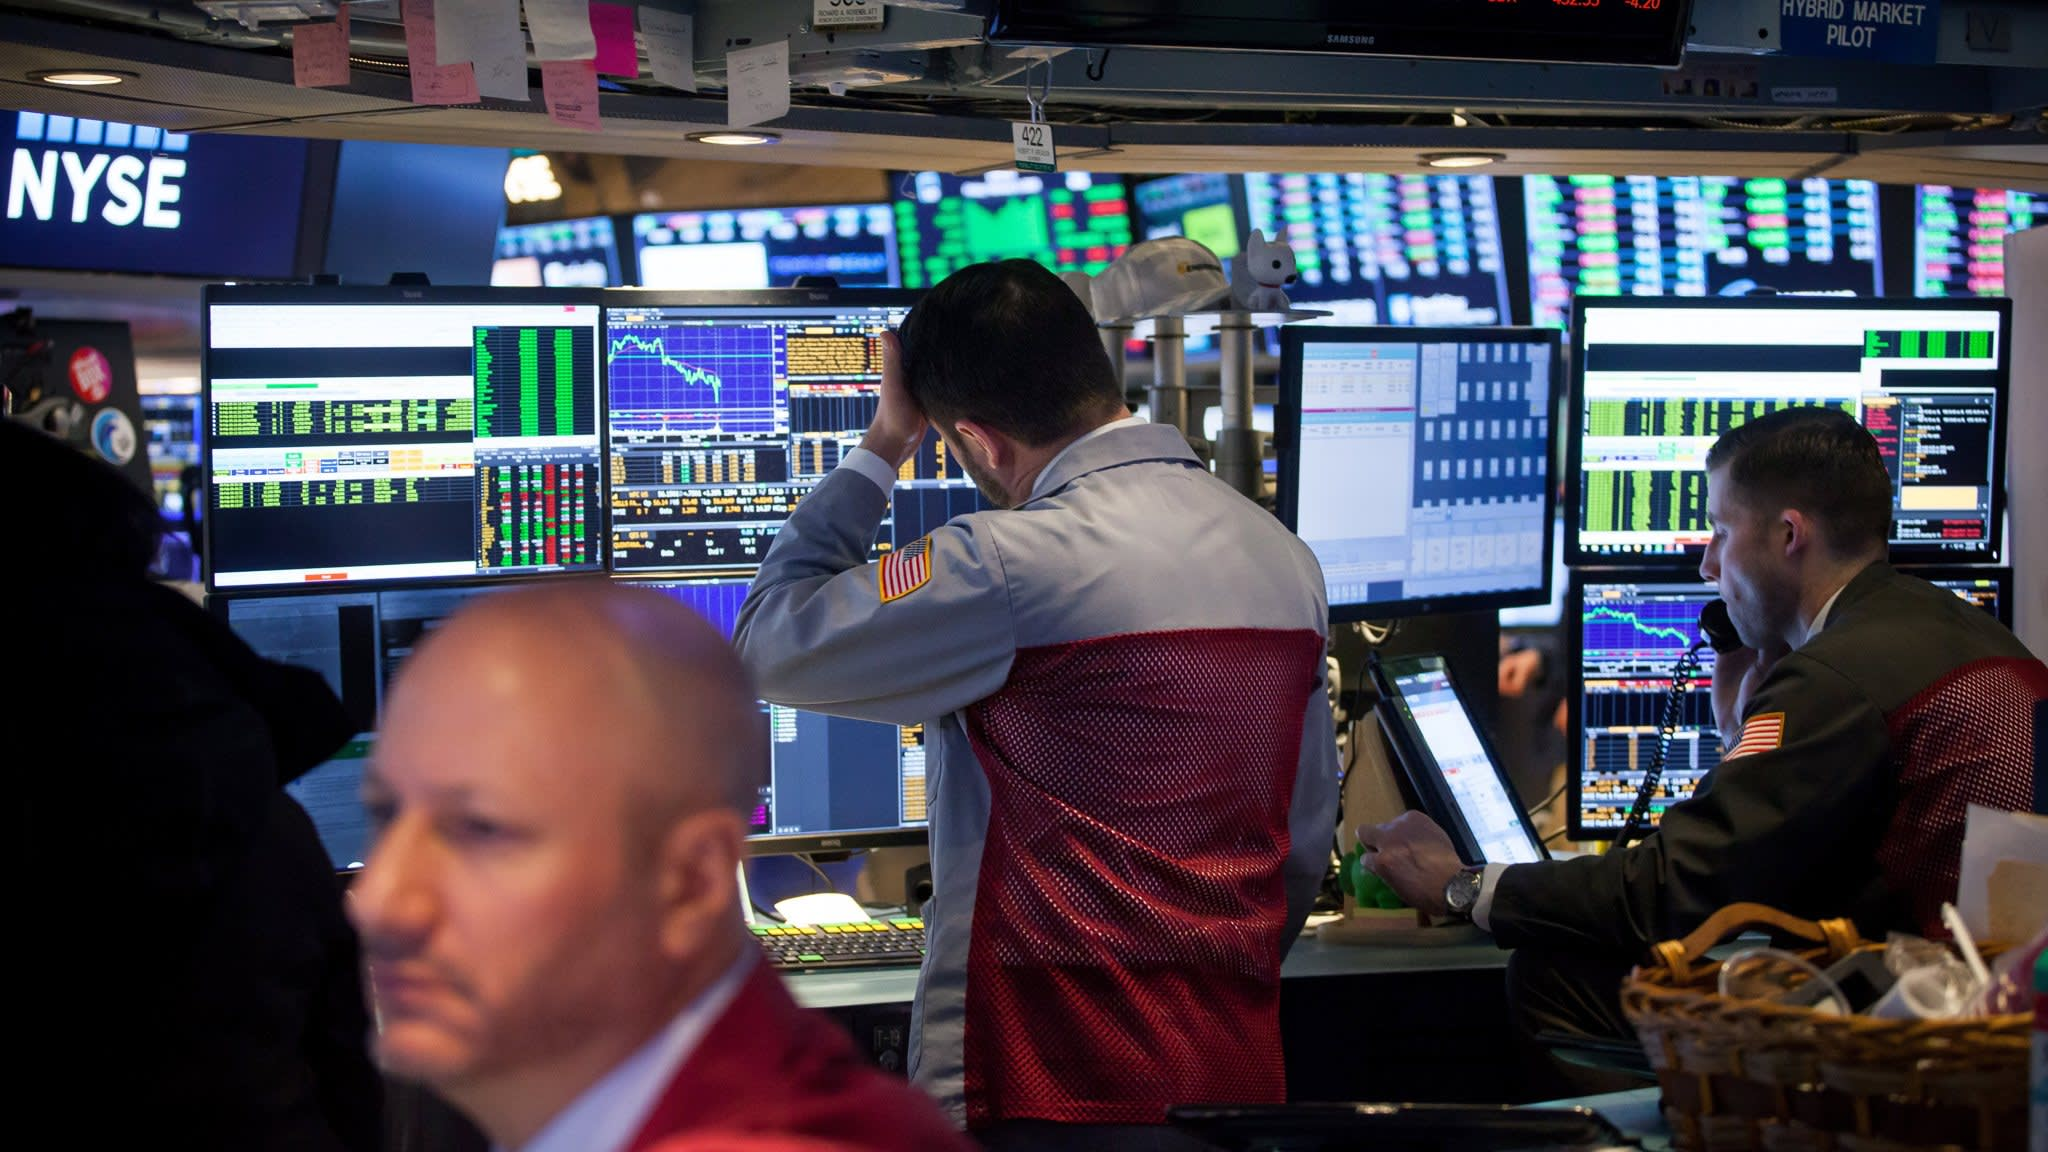 Higher hedging costs take shine off US corporate debt